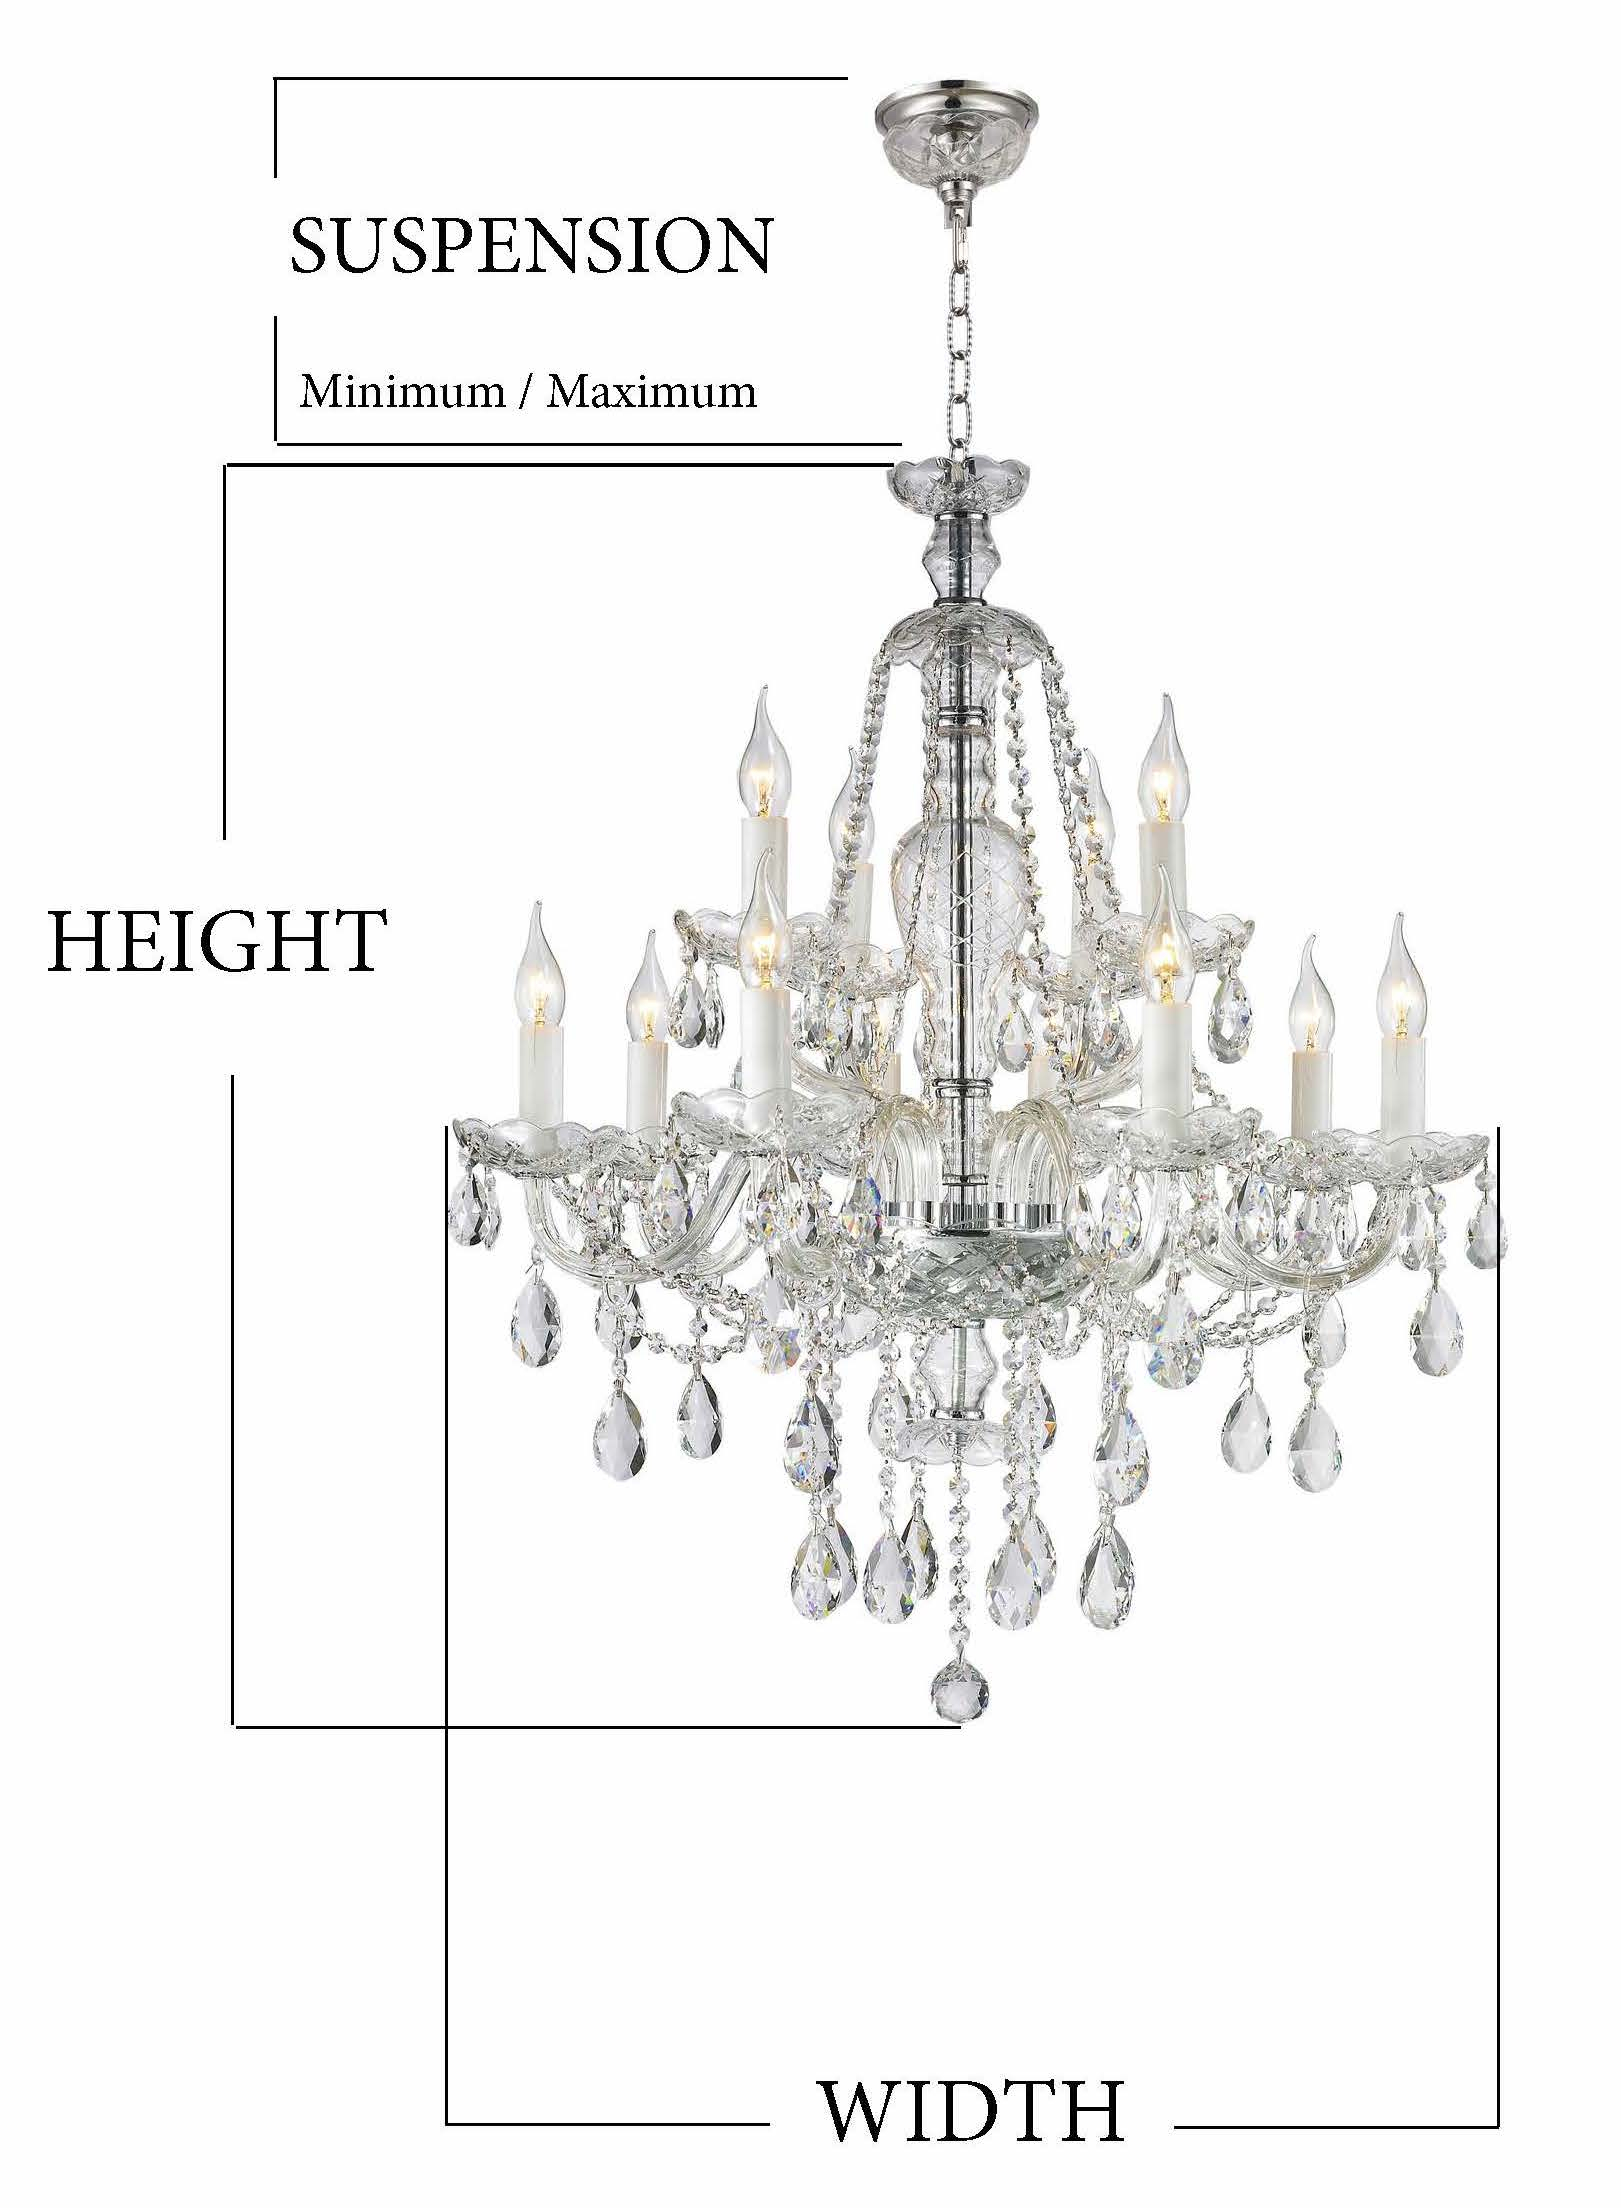 Chandelier Size Guide - Chandelier Suspension